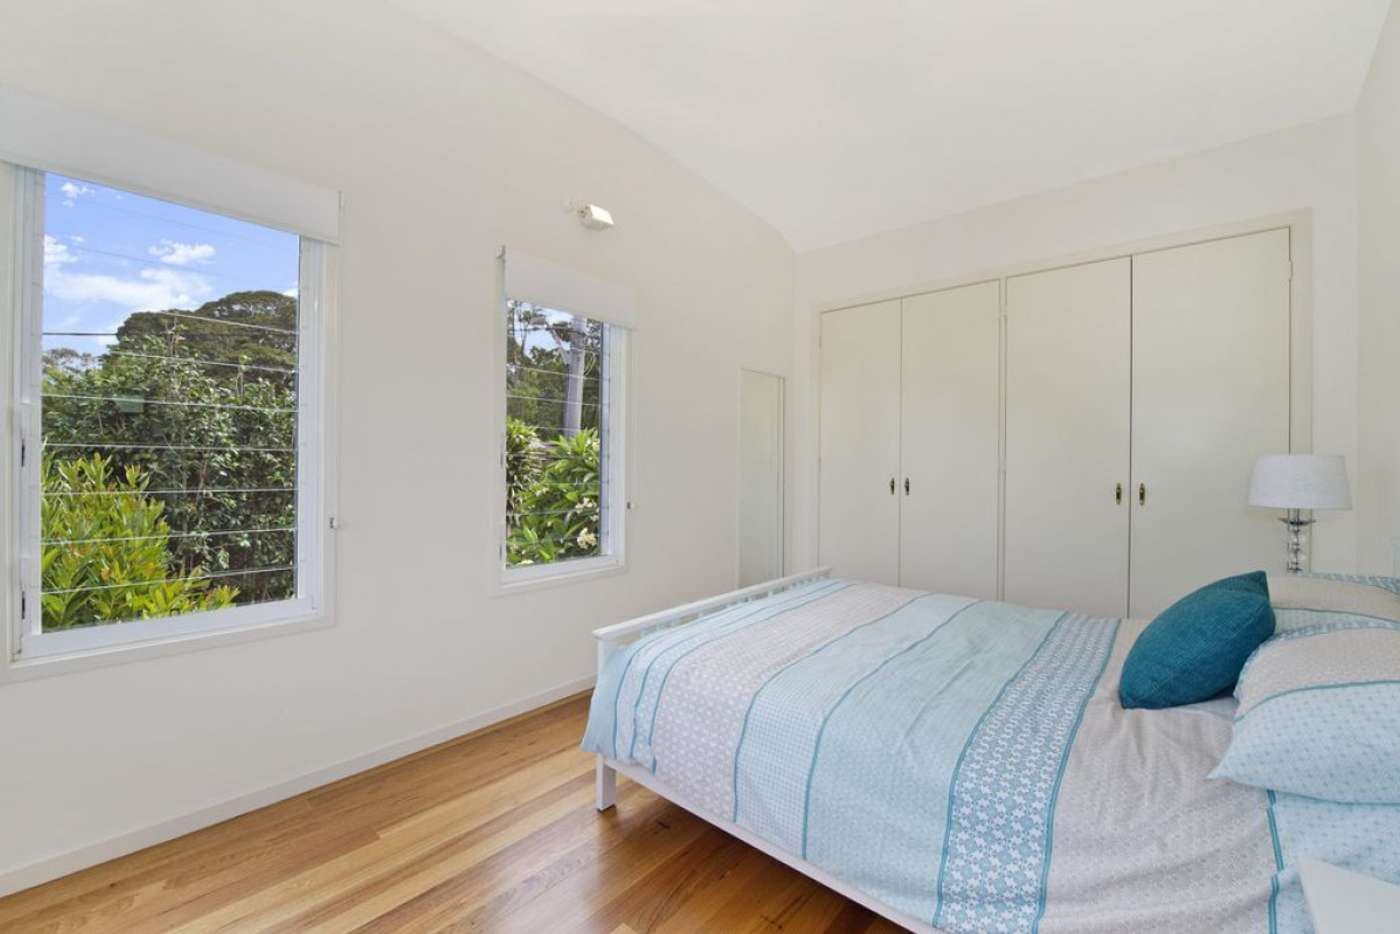 Seventh view of Homely house listing, 539 Ocean Drive, North Haven NSW 2443